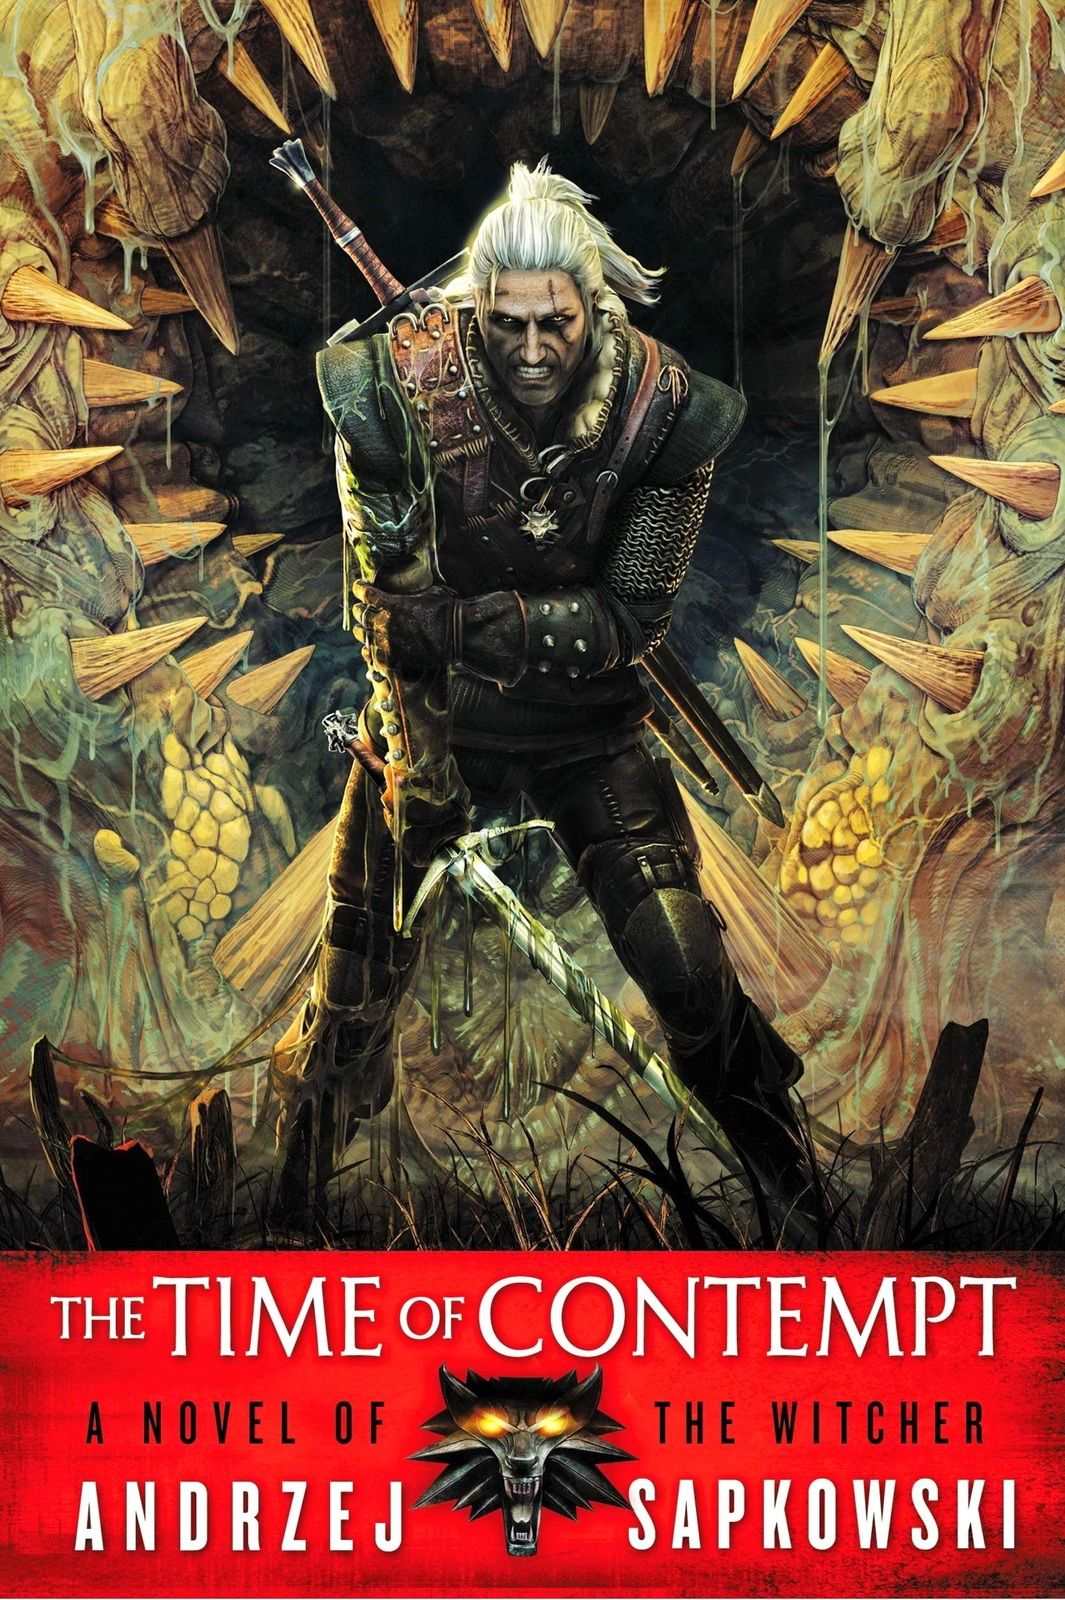 The Time of Contempt (The Witcher #3) (US Ed.) by Andrzej Sapkowski image